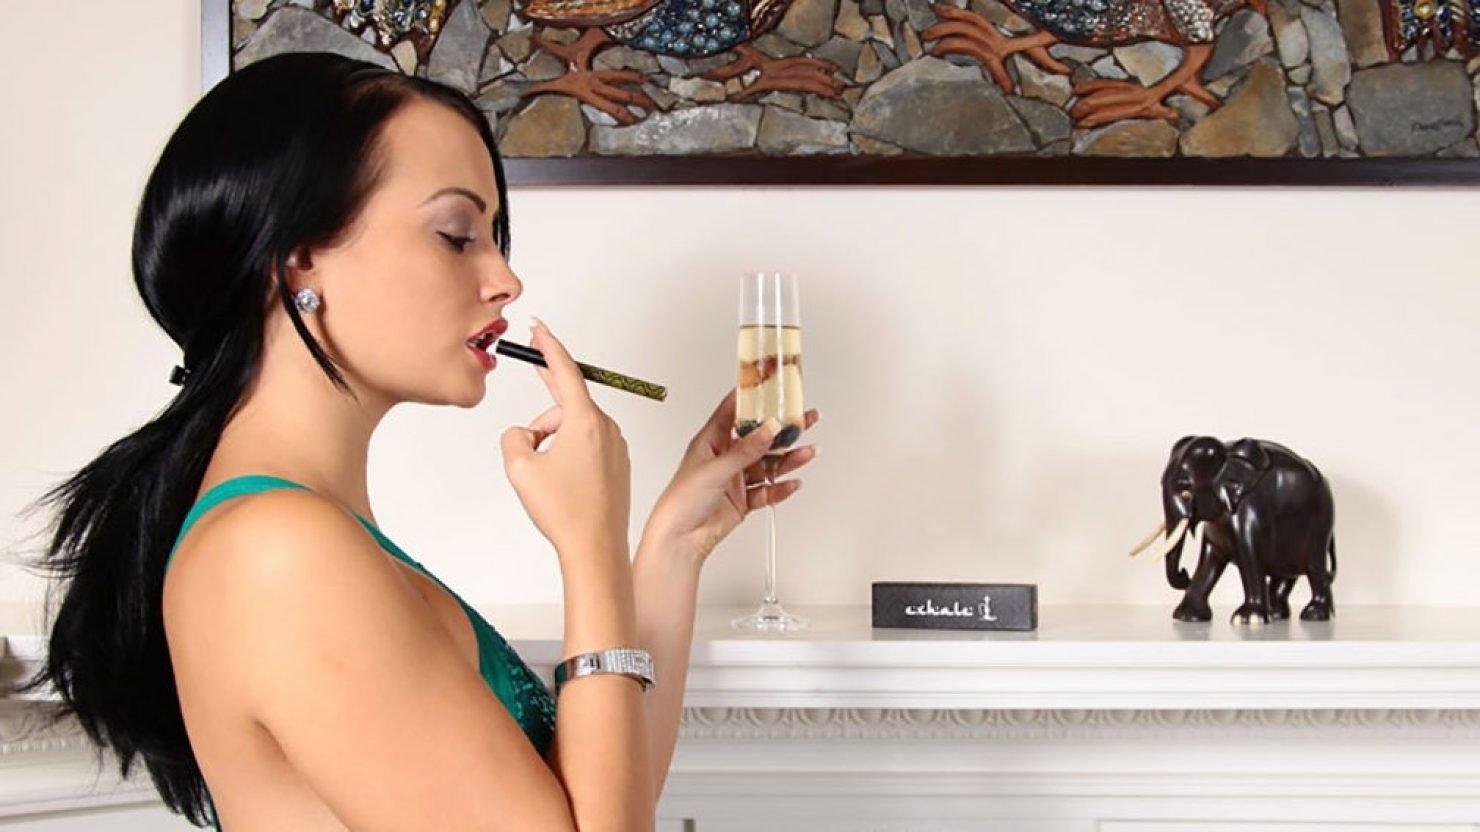 girls-exhaling-smoking-pictures-watch-young-movies